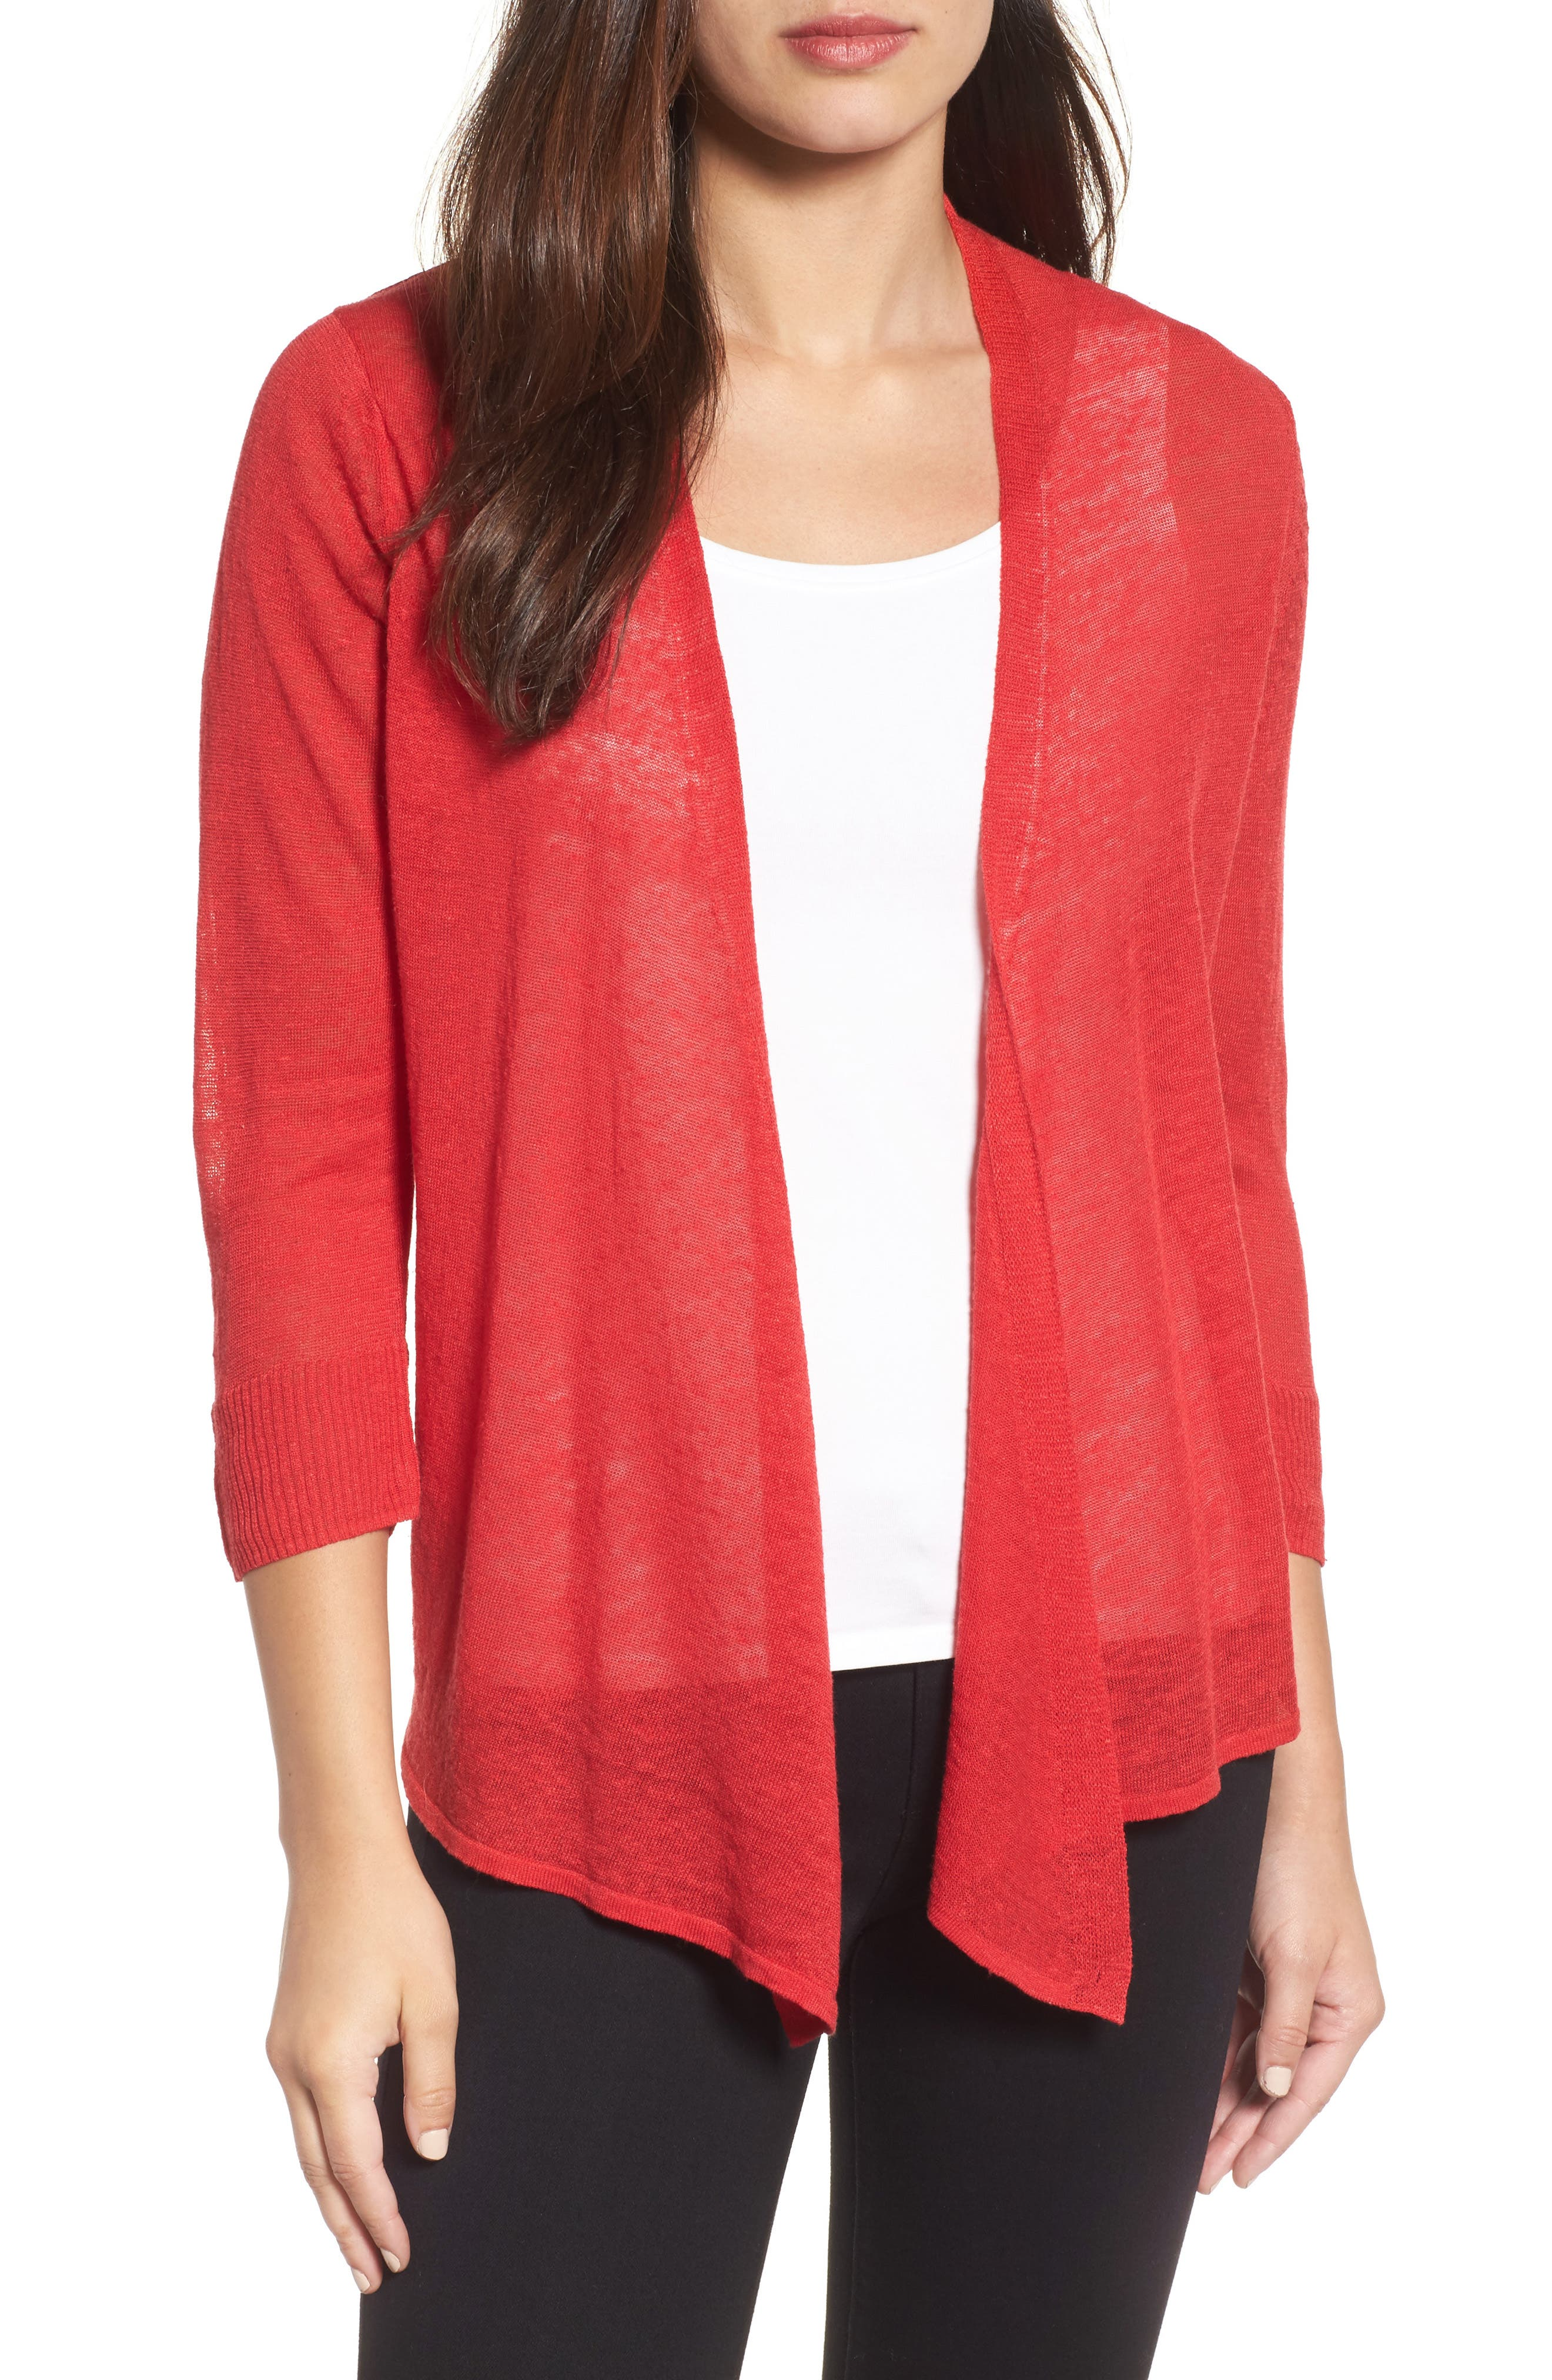 4-Way Cardigan,                         Main,                         color, True Red